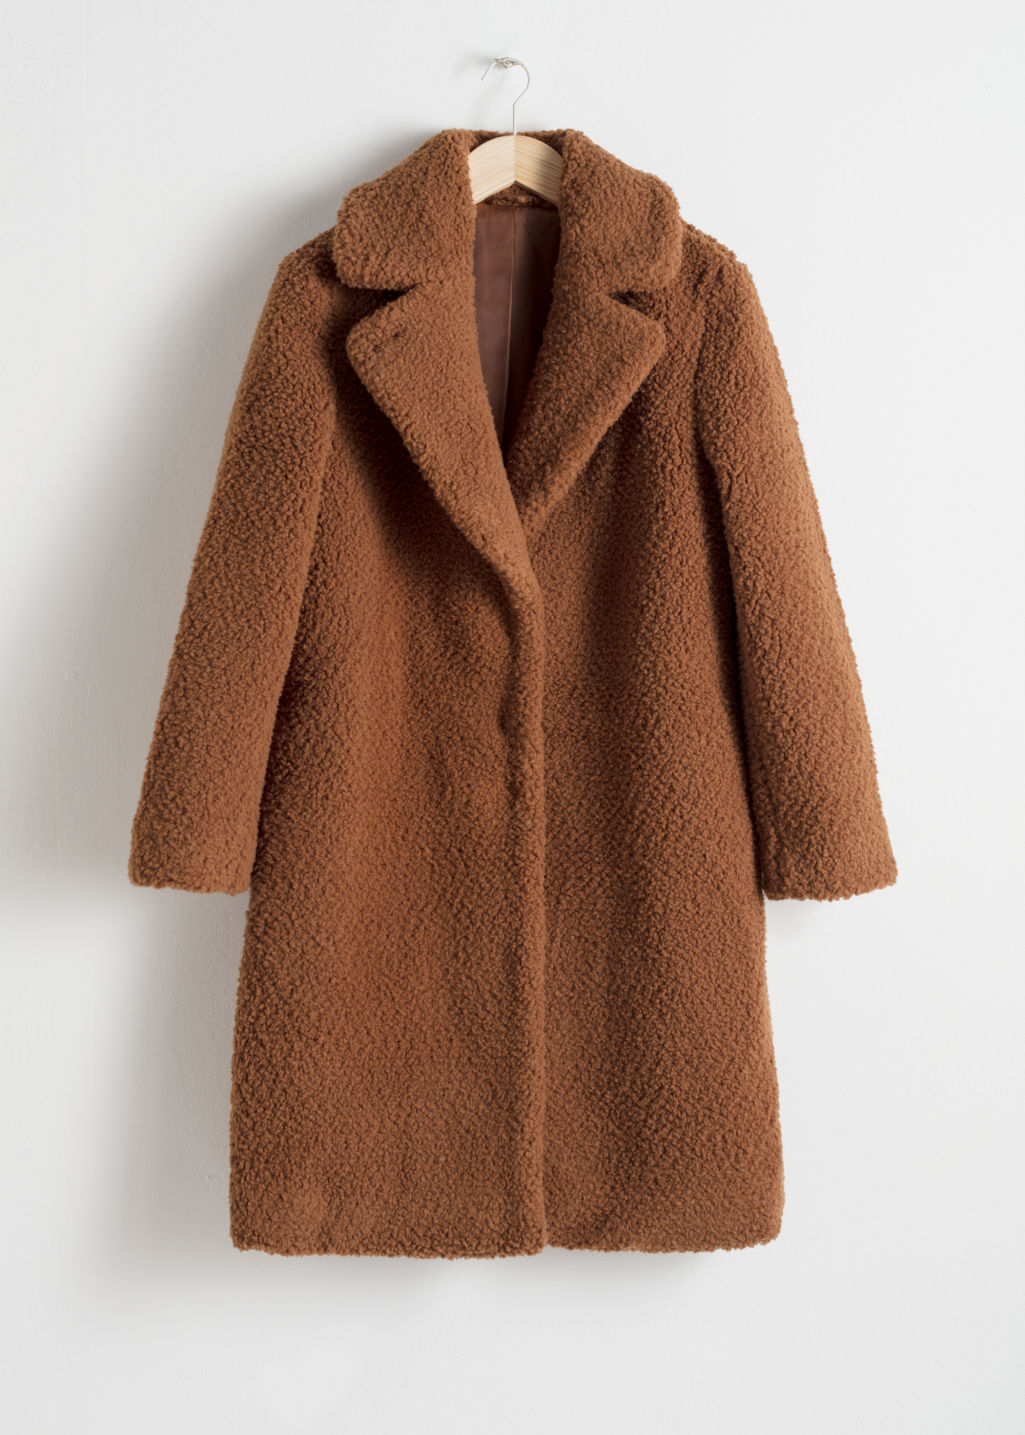 & OTHER STORIES / FAUX SHEARLING TEDDY COAT $179  -